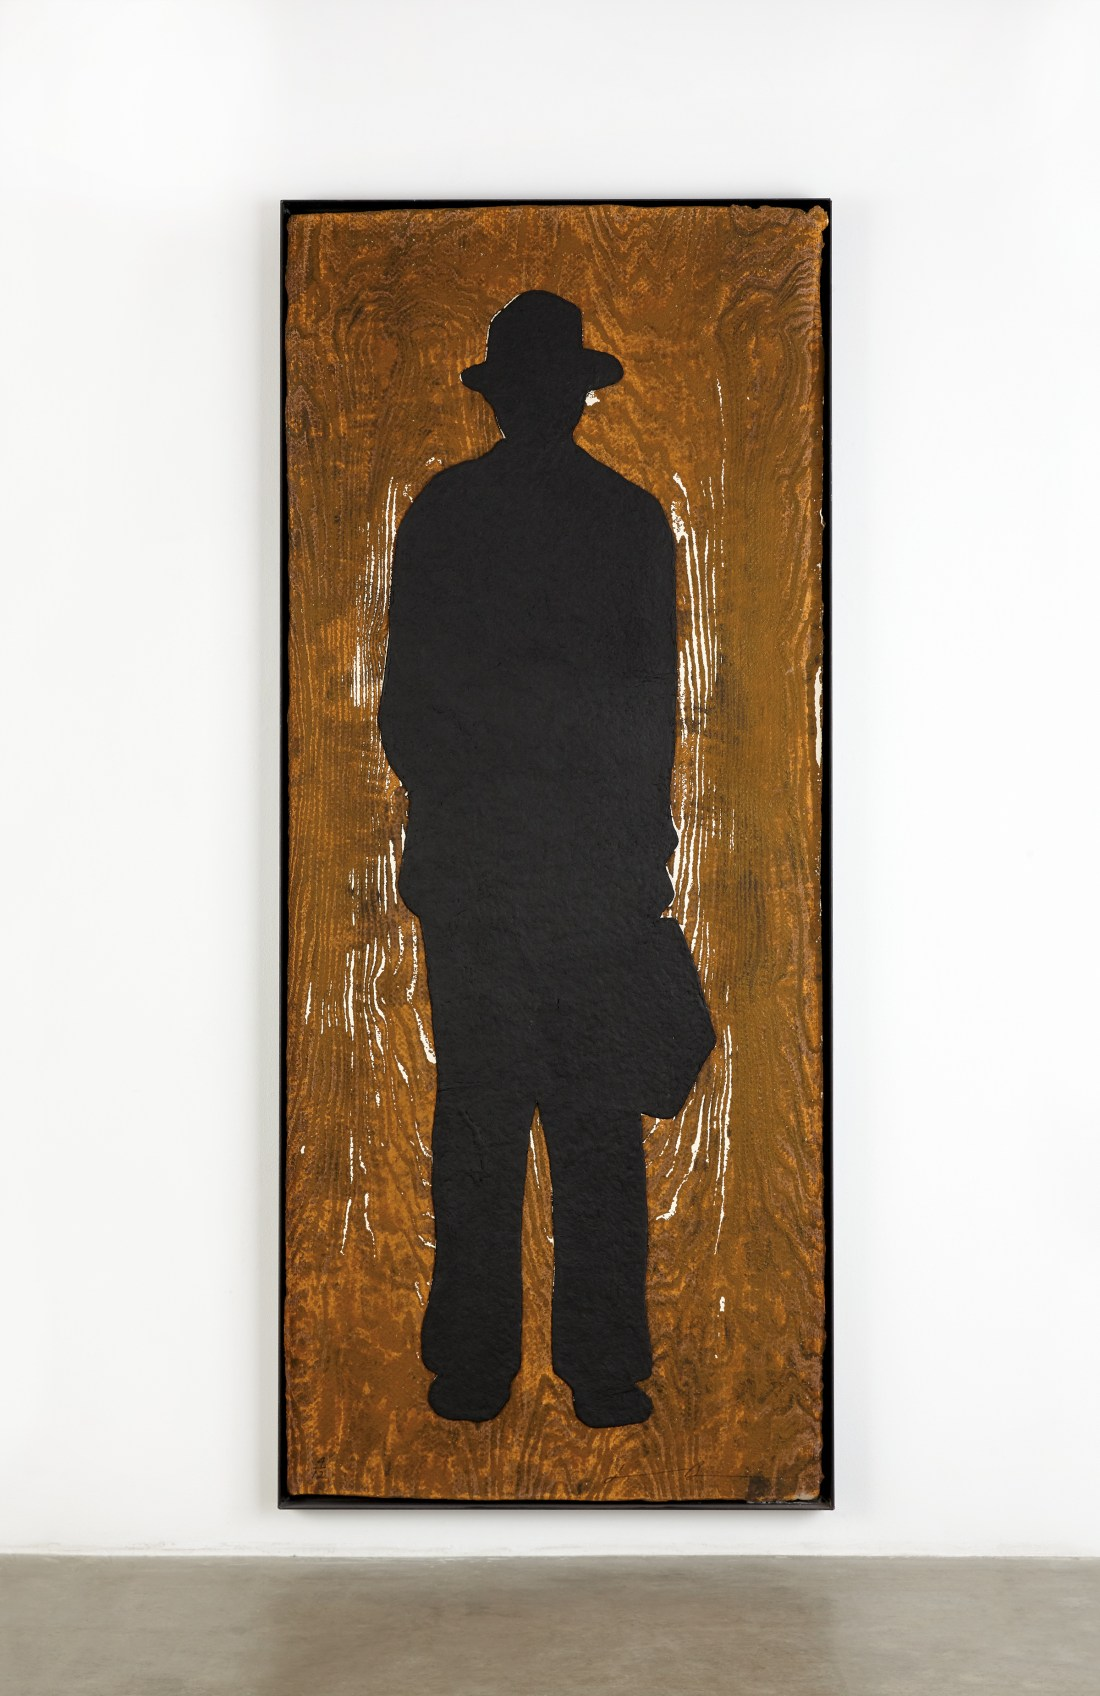 Man with a Briefcase (C), a woodcut with collage on handmade paper by Jonathan Borofsky. It's the fourth of a 1991 limited edition of 12, and it measures 92 inches by 39 inches.